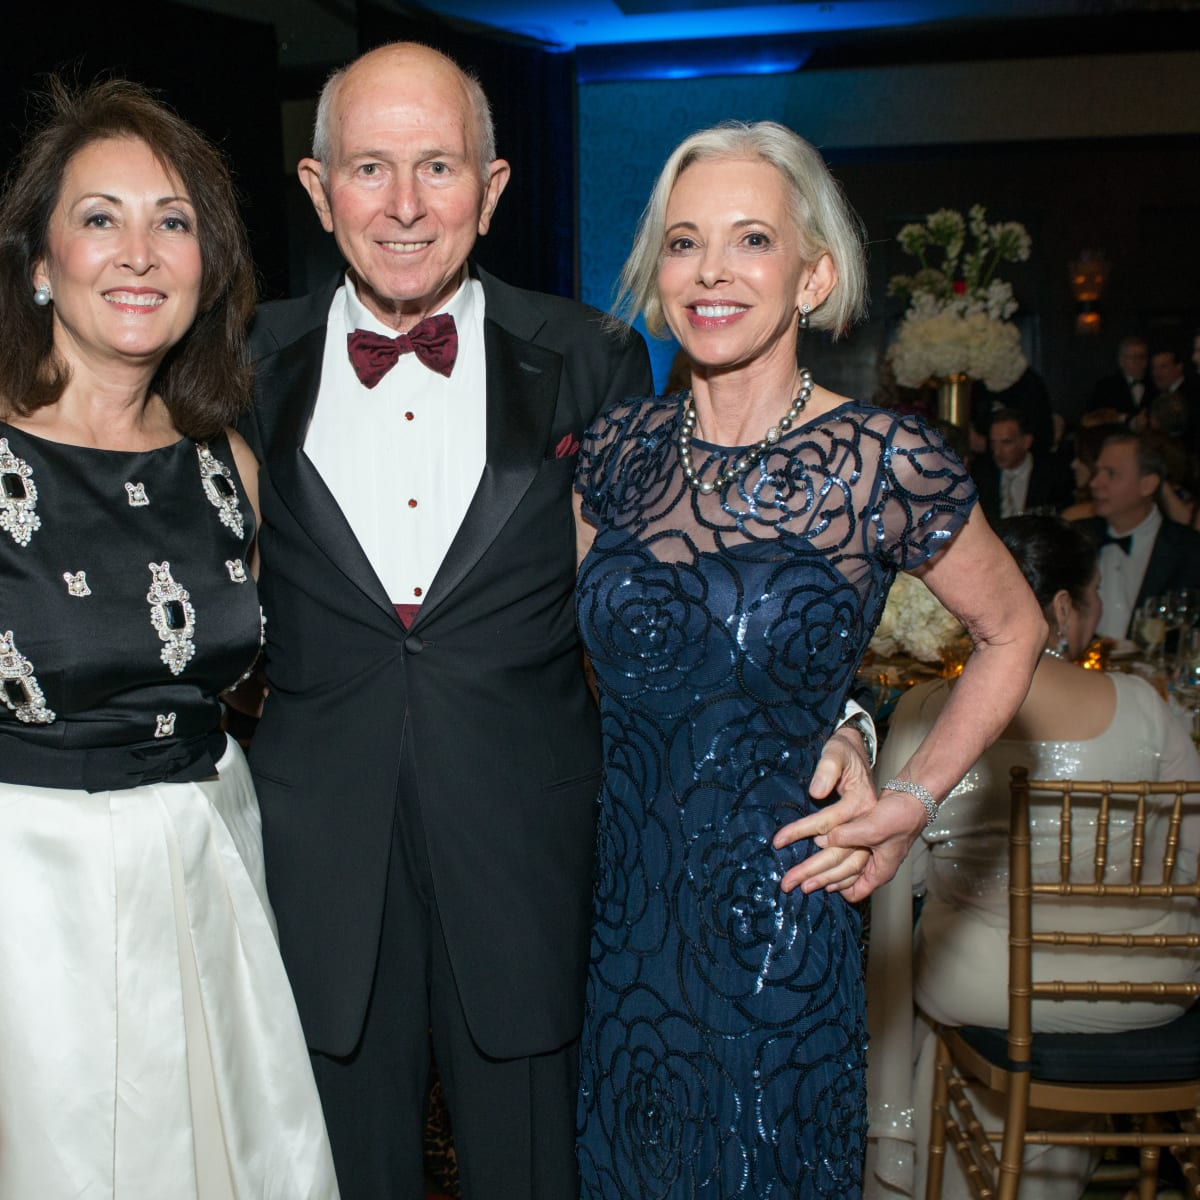 News, Shelby, UNICEF gala, Nov. 2015, Penny Loyd, Dr. Alex Dell, Doreen Pinnell